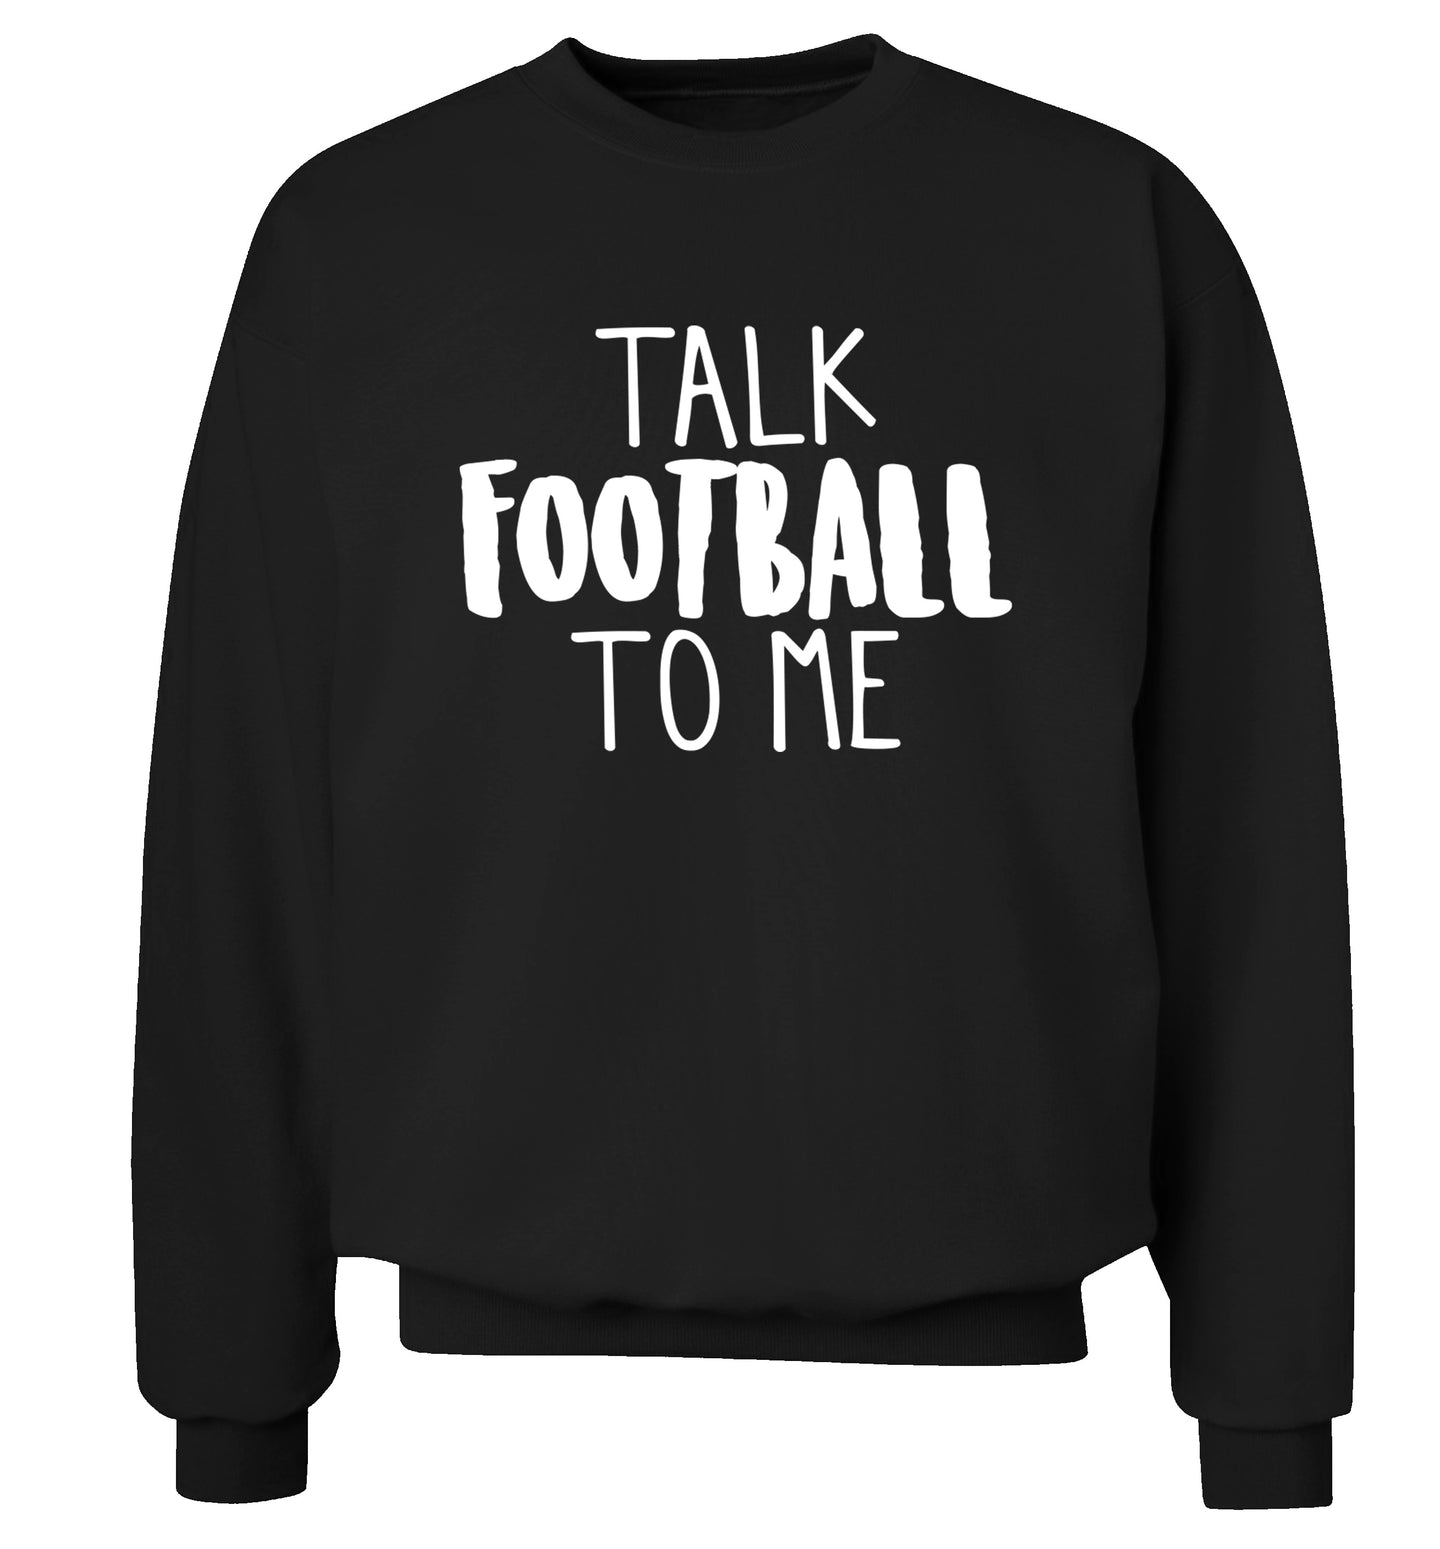 Talk football to me Adult's unisexblack Sweater 2XL